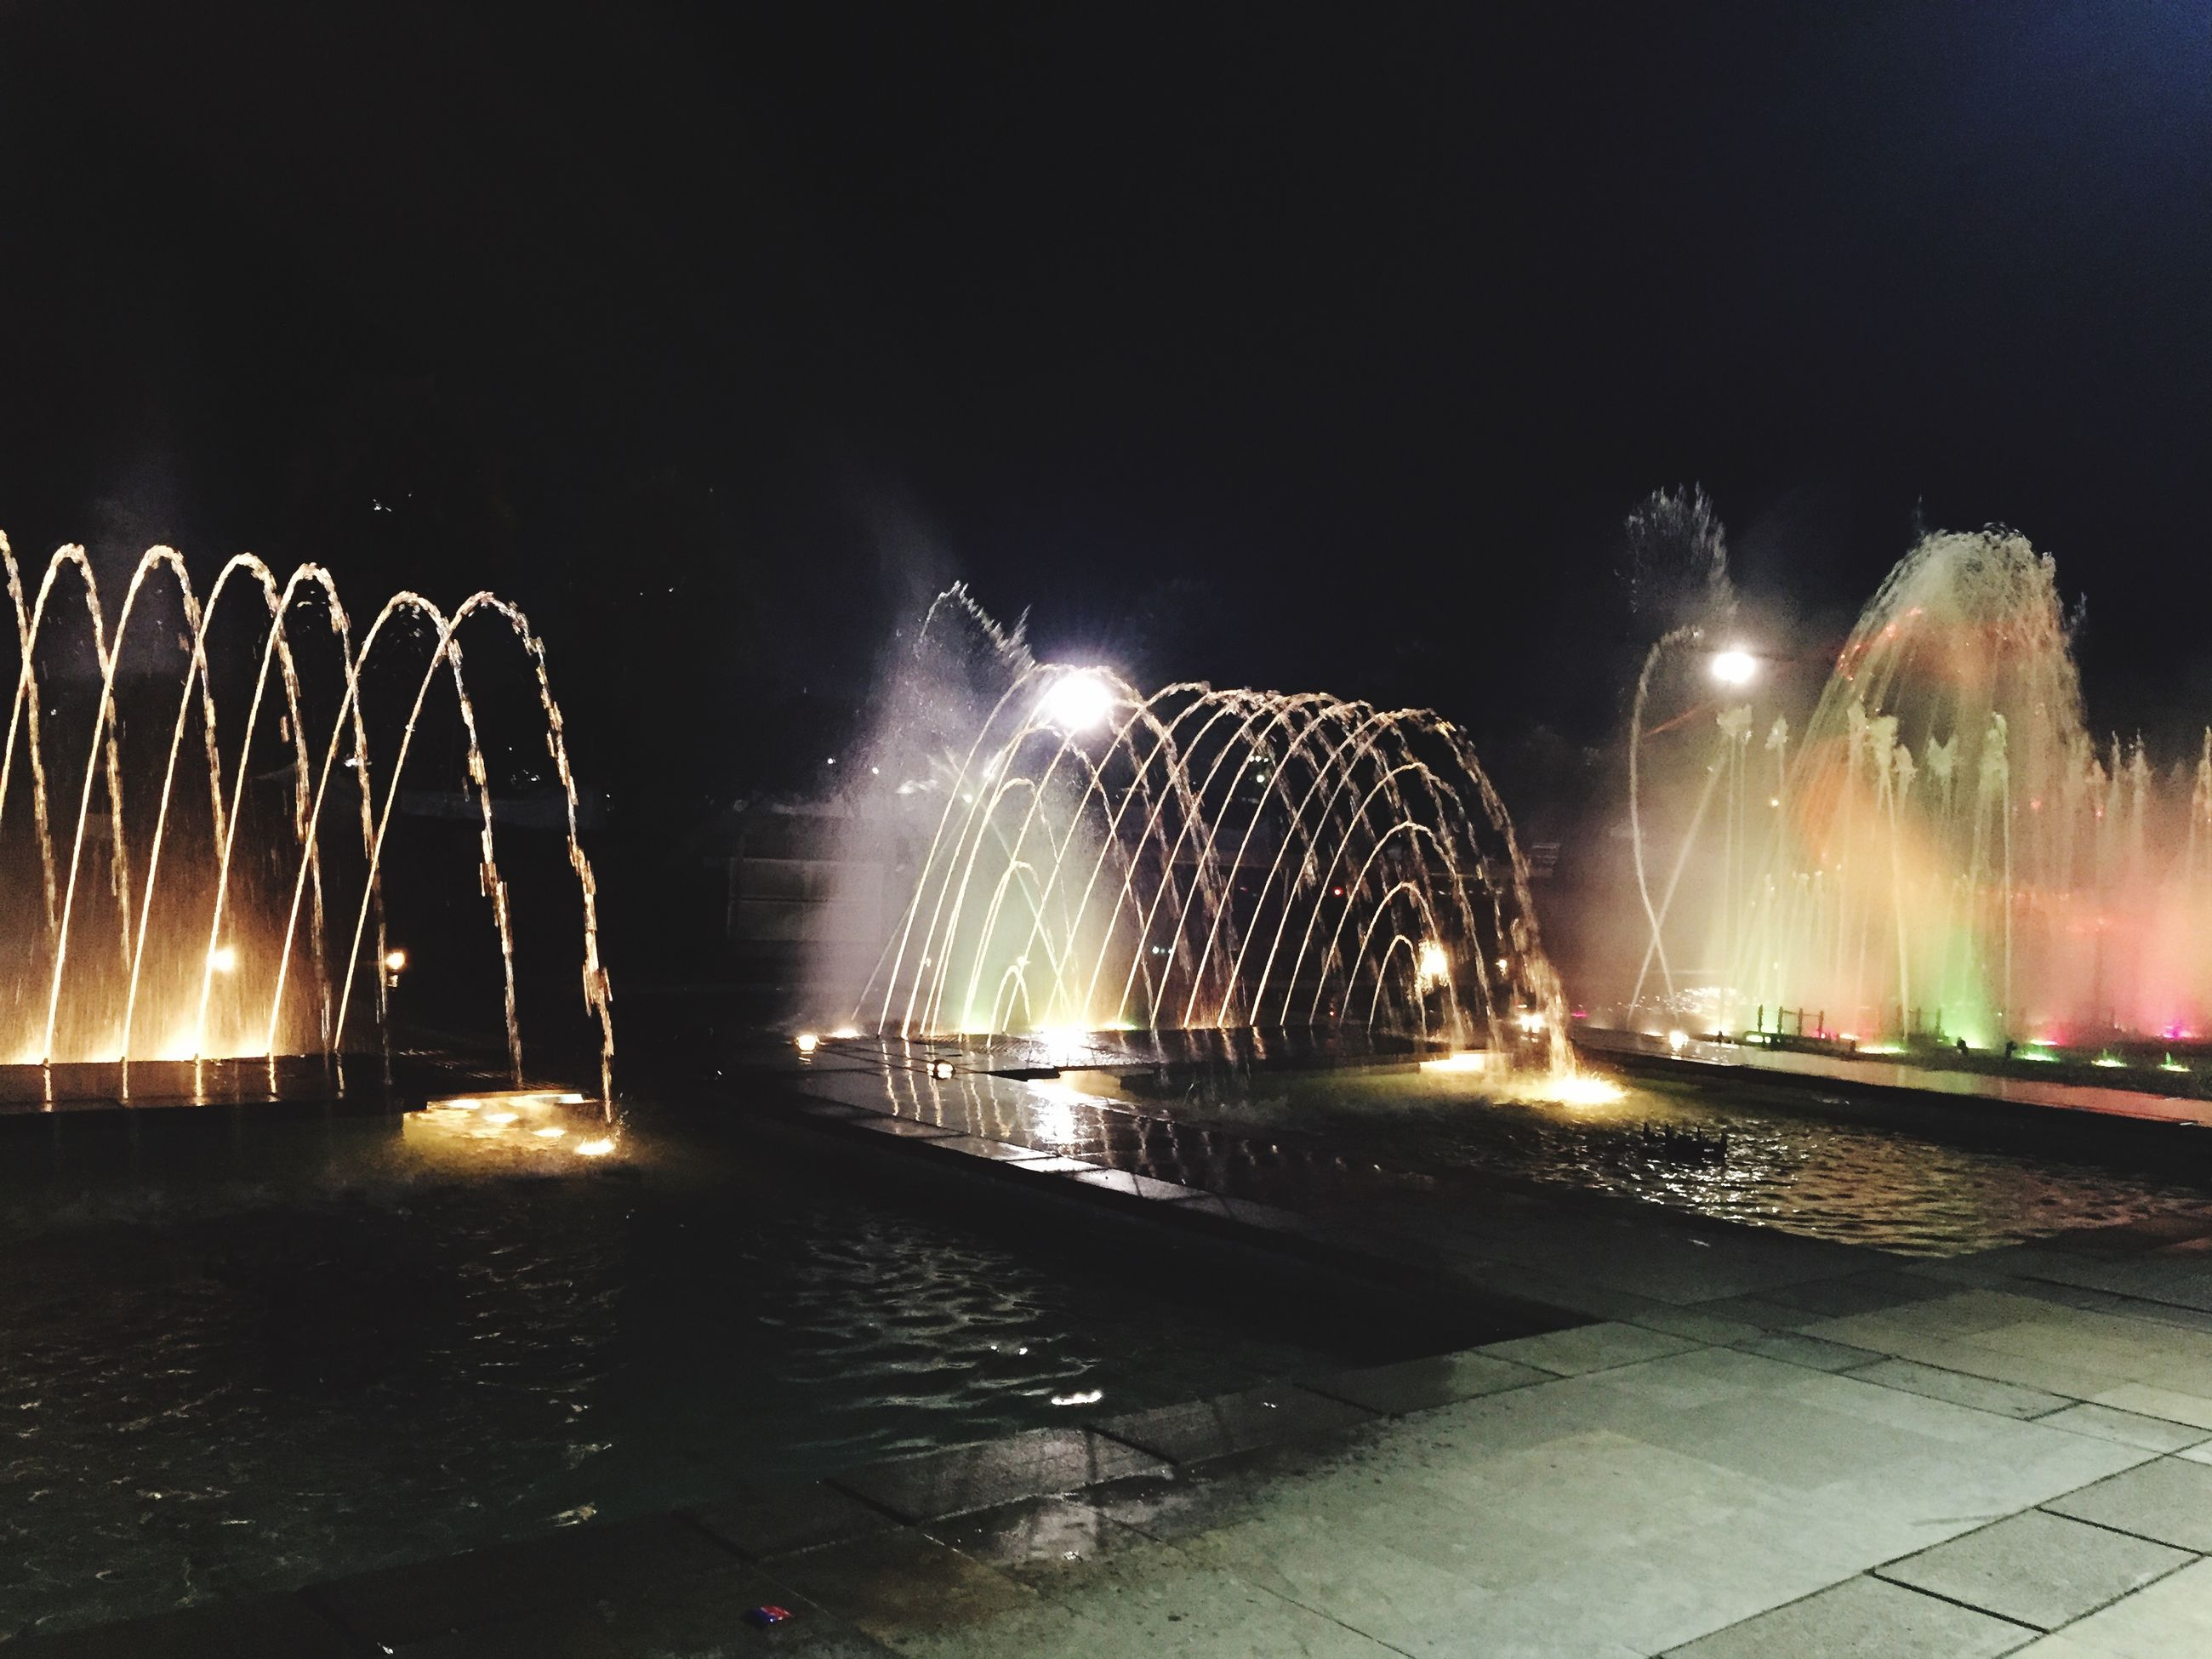 night, illuminated, fountain, long exposure, motion, water, spraying, built structure, city, architecture, blurred motion, building exterior, glowing, light trail, splashing, light - natural phenomenon, sky, incidental people, outdoors, clear sky